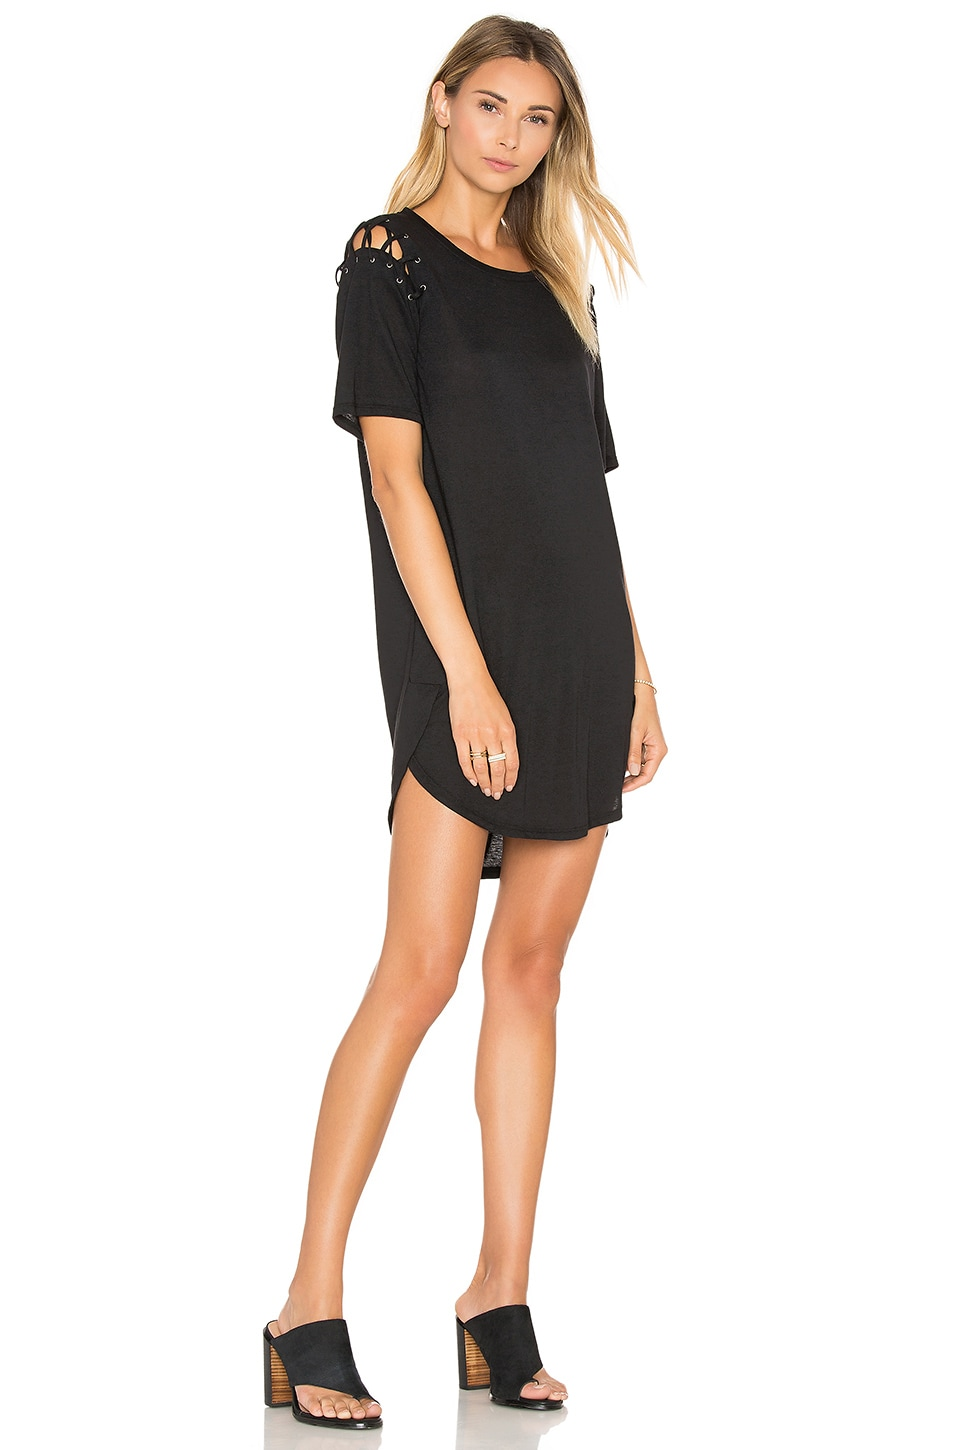 David Lerner Lace Up T Shirt Dress in Classic Black